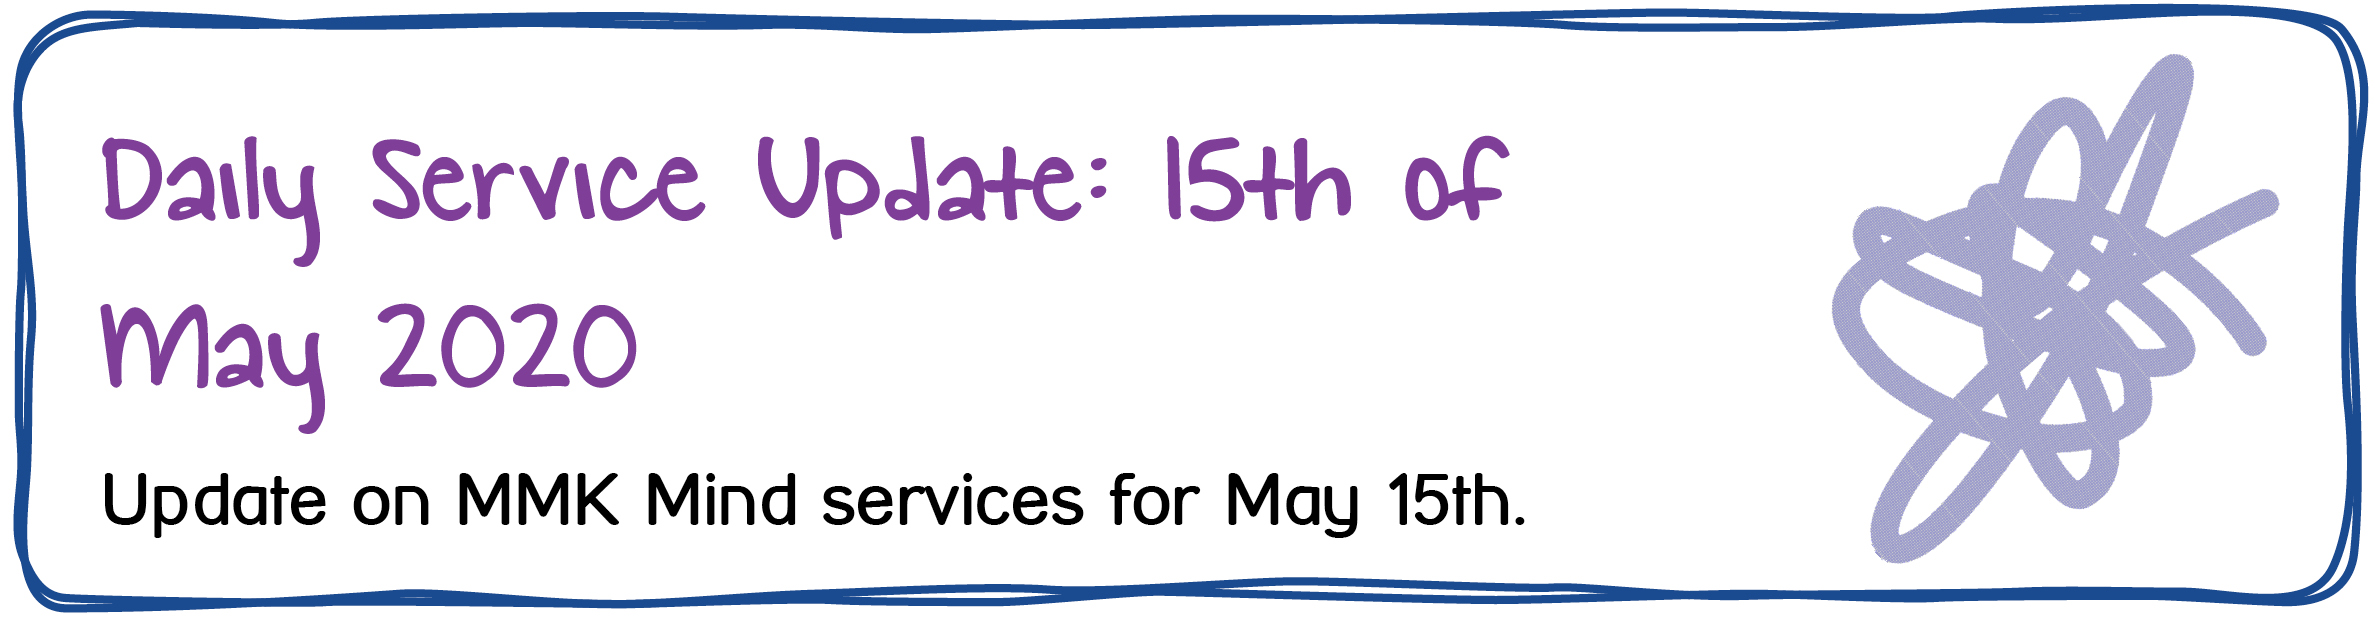 Daily Service Update: 15th of May 2020. Update on MMK Mind services for May 15th.